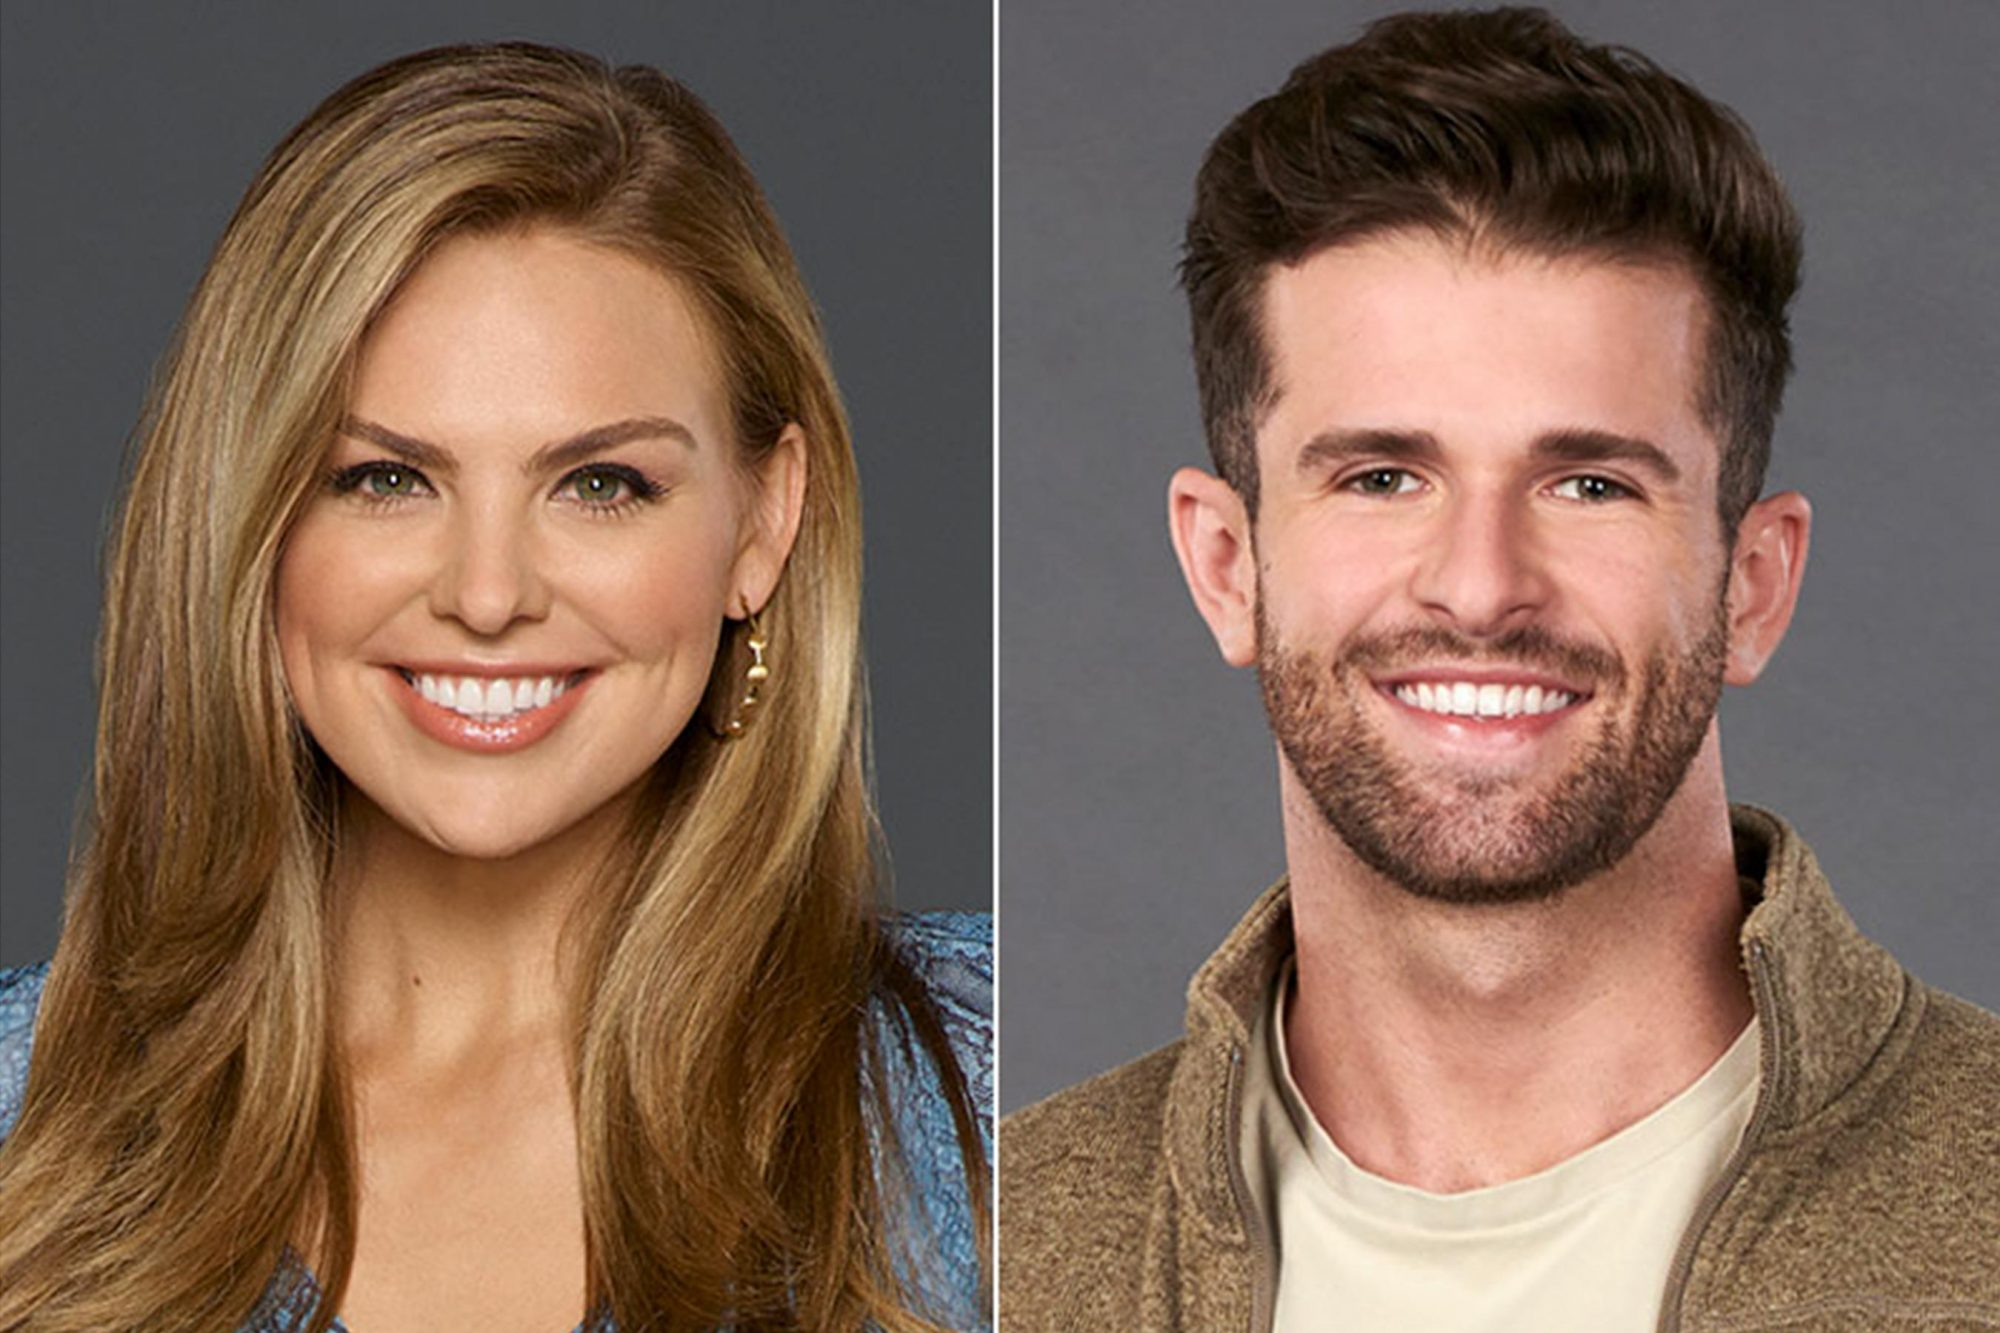 """THE BACHELORETTE - Hannah Brown caught the eye of Colton Underwood early on during the 23rd season of """"The Bachelor,"""" showing him, and all of America, what Alabama Hannah is made of - a fun country girl who is unapologetically herself. After being sent home unexpectedly, Hannah took the time to reflect on her breakup, gaining a powerful understanding of her desire to be deeply and fiercely loved. Now, with a newfound sense of self and a little southern charm, she is more ready than ever to find her true love on the milestone 15th season of """"The Bachelorette."""" (ABC/Ed Herrera) HANNAH BROWN THE BACHELORETTE - Hannah Brown caught the eye of Colton Underwood early on during the 23rd season of """"The Bachelor,"""" showing him, and all of America, what Alabama Hannah is made of - a fun country girl who is unapologetically herself. After being sent home unexpectedly, Hannah took the time to reflect on her breakup, gaining a powerful understanding of her desire to be deeply and fiercely loved. Now, with a newfound sense of self and a little southern charm, she is more ready than ever to find her true love on the milestone 15th season of """"The Bachelorette."""" (ABC/Ed Herrera) JED"""